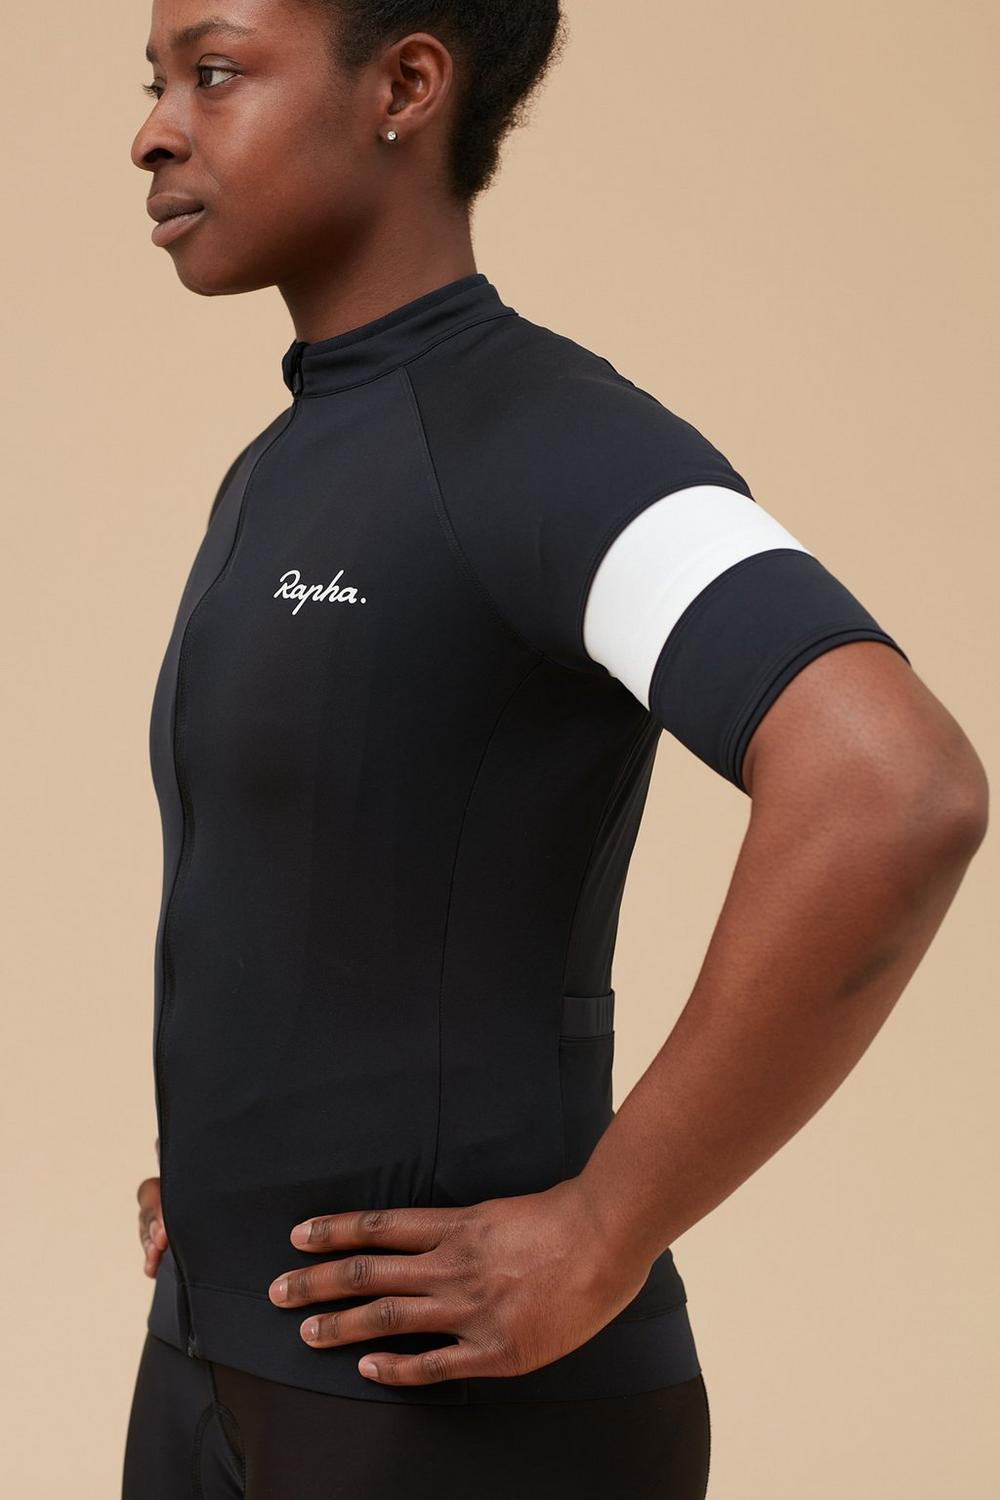 Rapha Core Collection womens best affordable cycling jerseys womens best affordable cycling bib shorts padded bib shorts